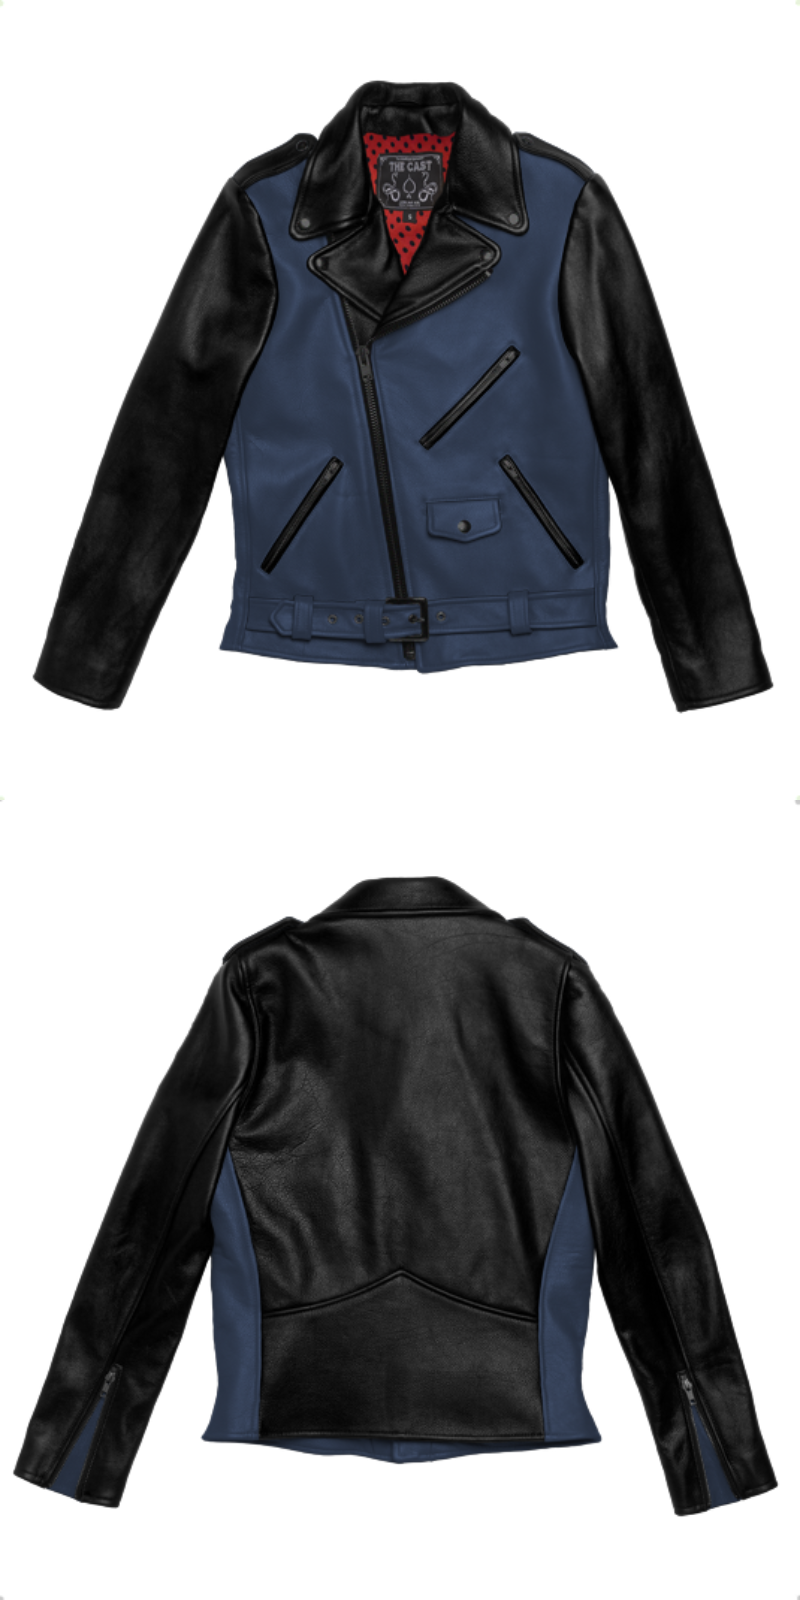 Custom Bowery Jacket Women - Customer's Product with price 1595.00 ID 3PZH3xdwErV2qj9W6YkNvzaF